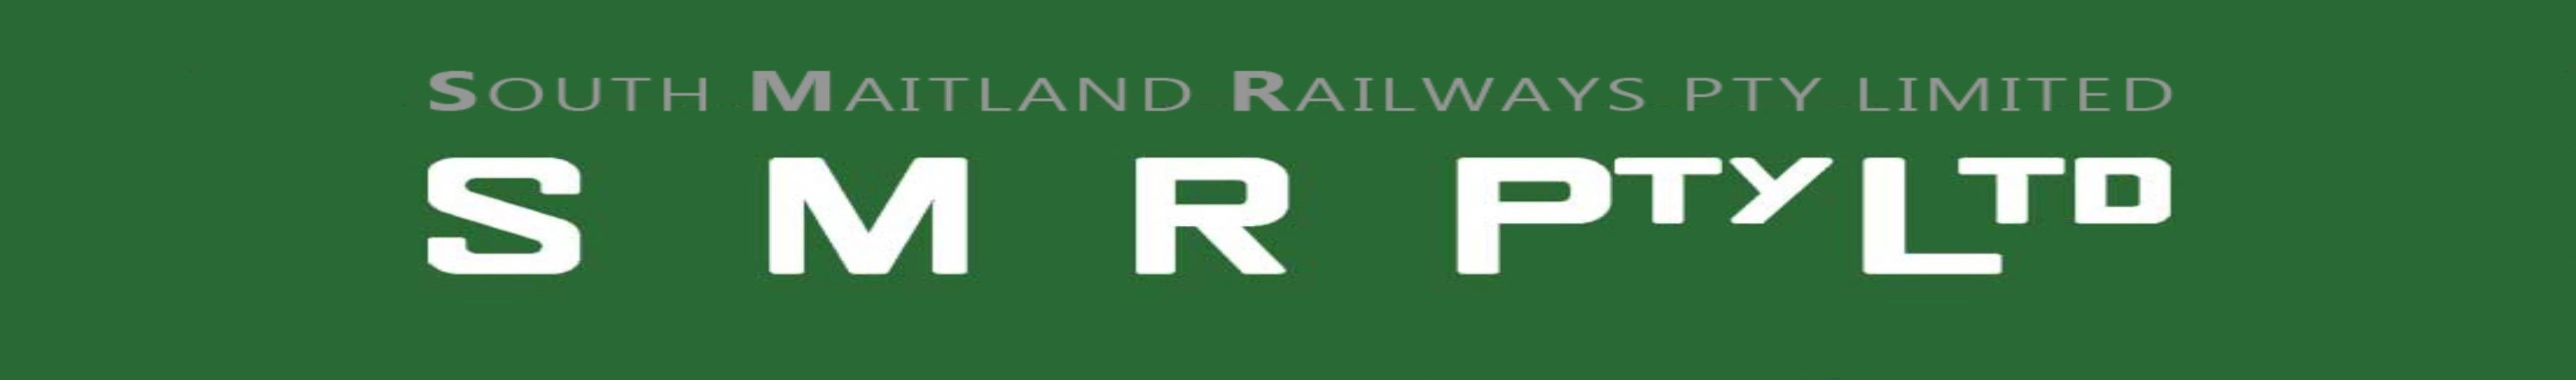 South Maitland Railways Logo